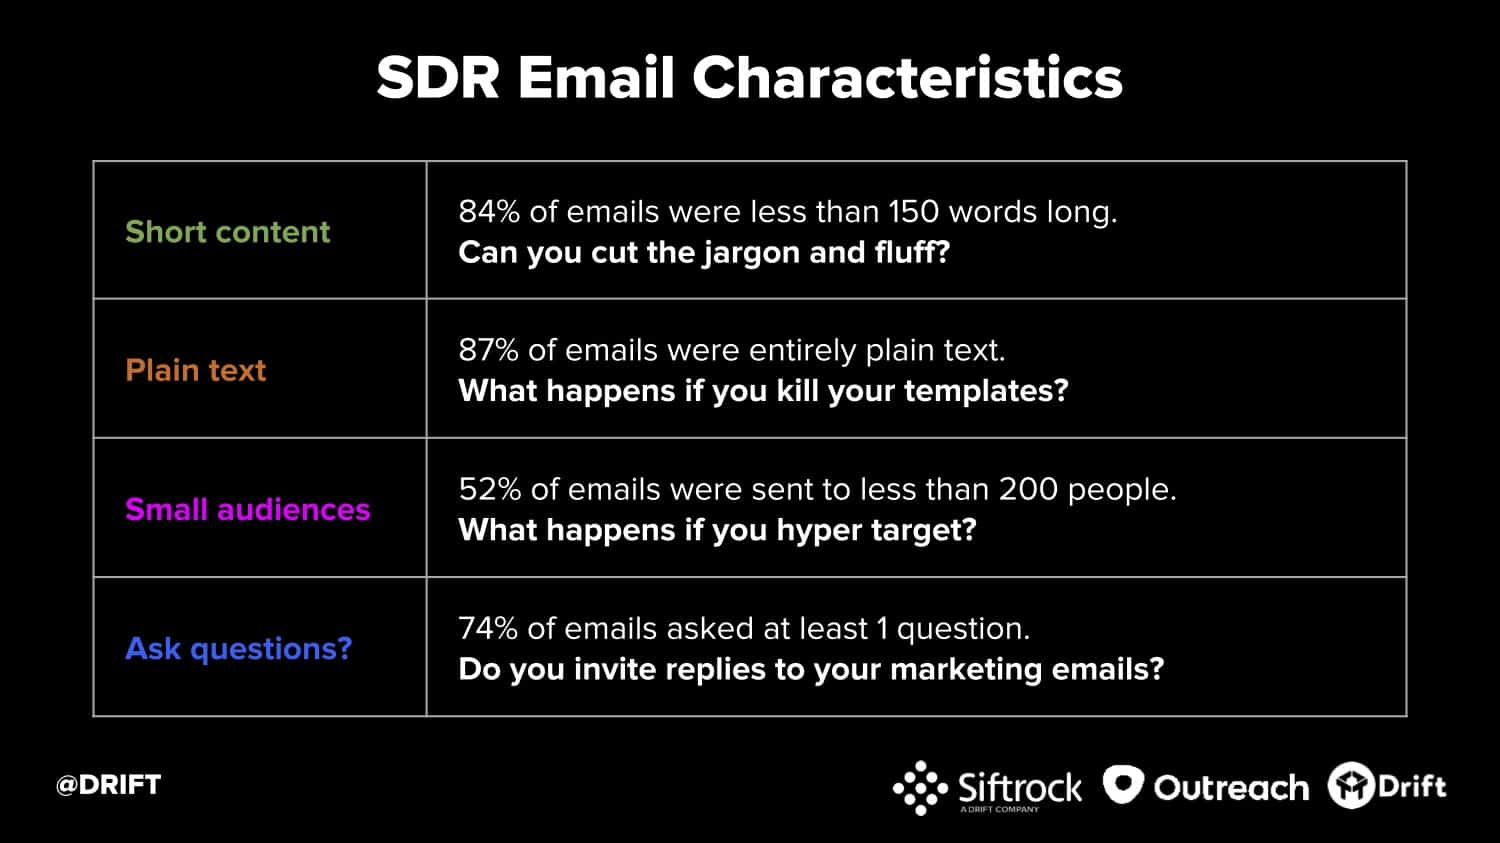 Drift cold email study SDR email characteristics